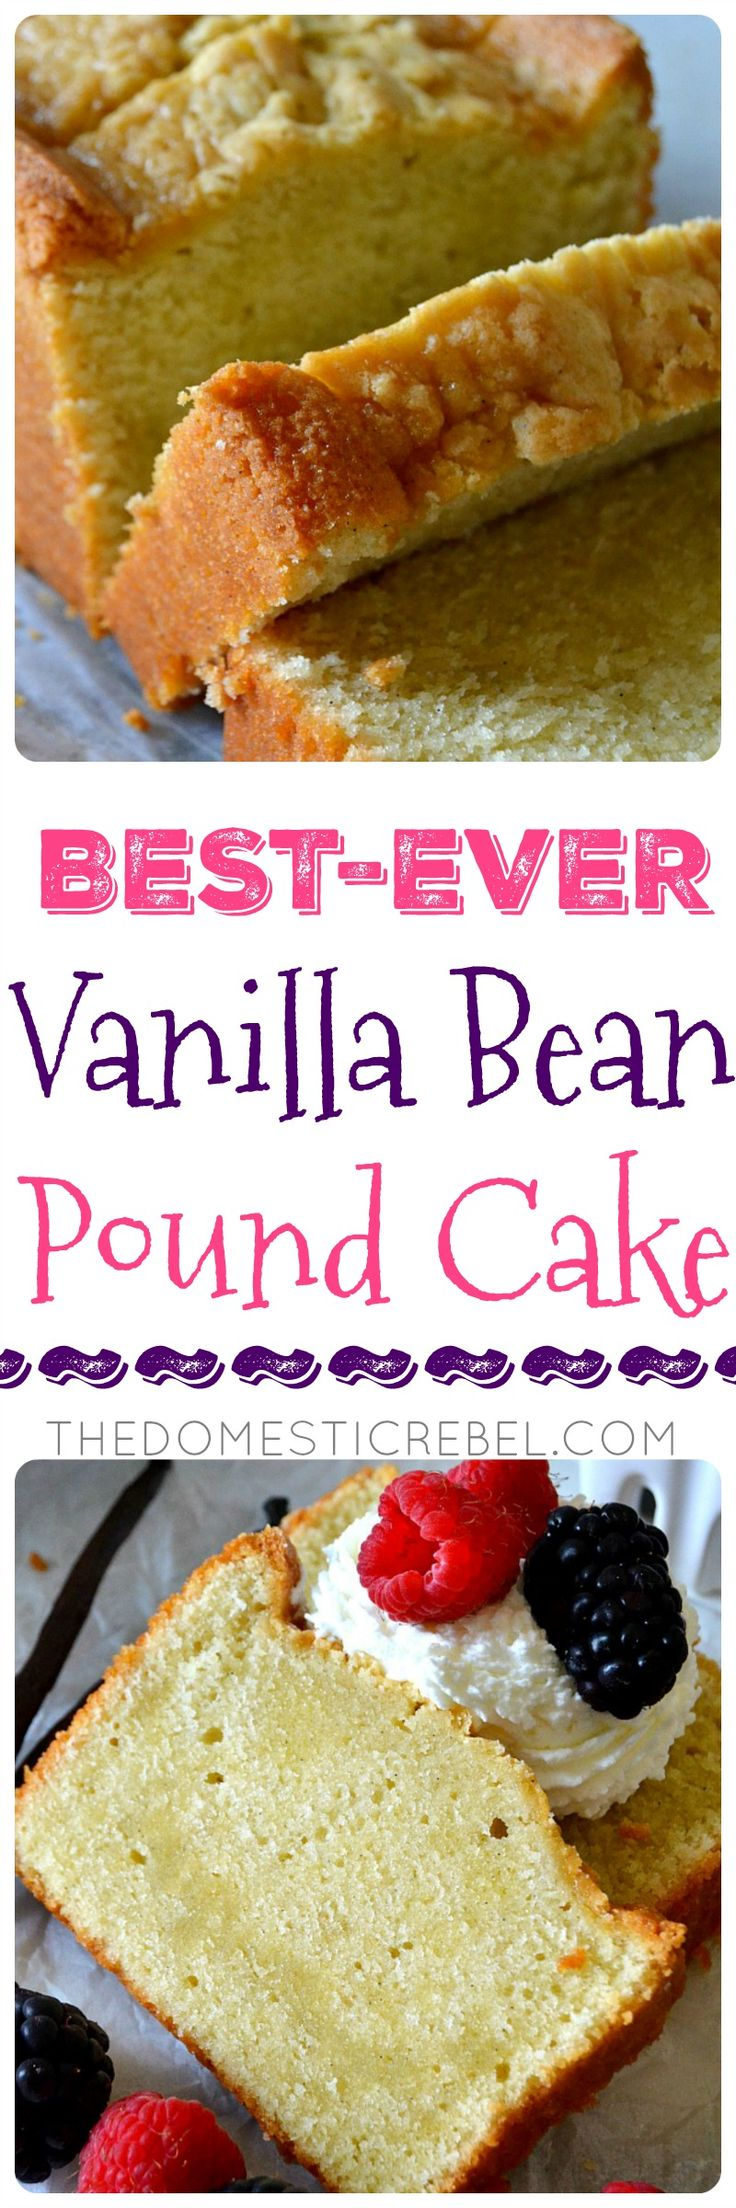 This Vanilla Bean Pound Cake is the BEST pound cake recipe! Moist, buttery, fluffy & tender pound cake swirled with fresh vanilla bean flecks for a super flavorful, outstandingly EASY cake recipe! Serve with fresh whipped cream & fruit or cube it for a trifle!